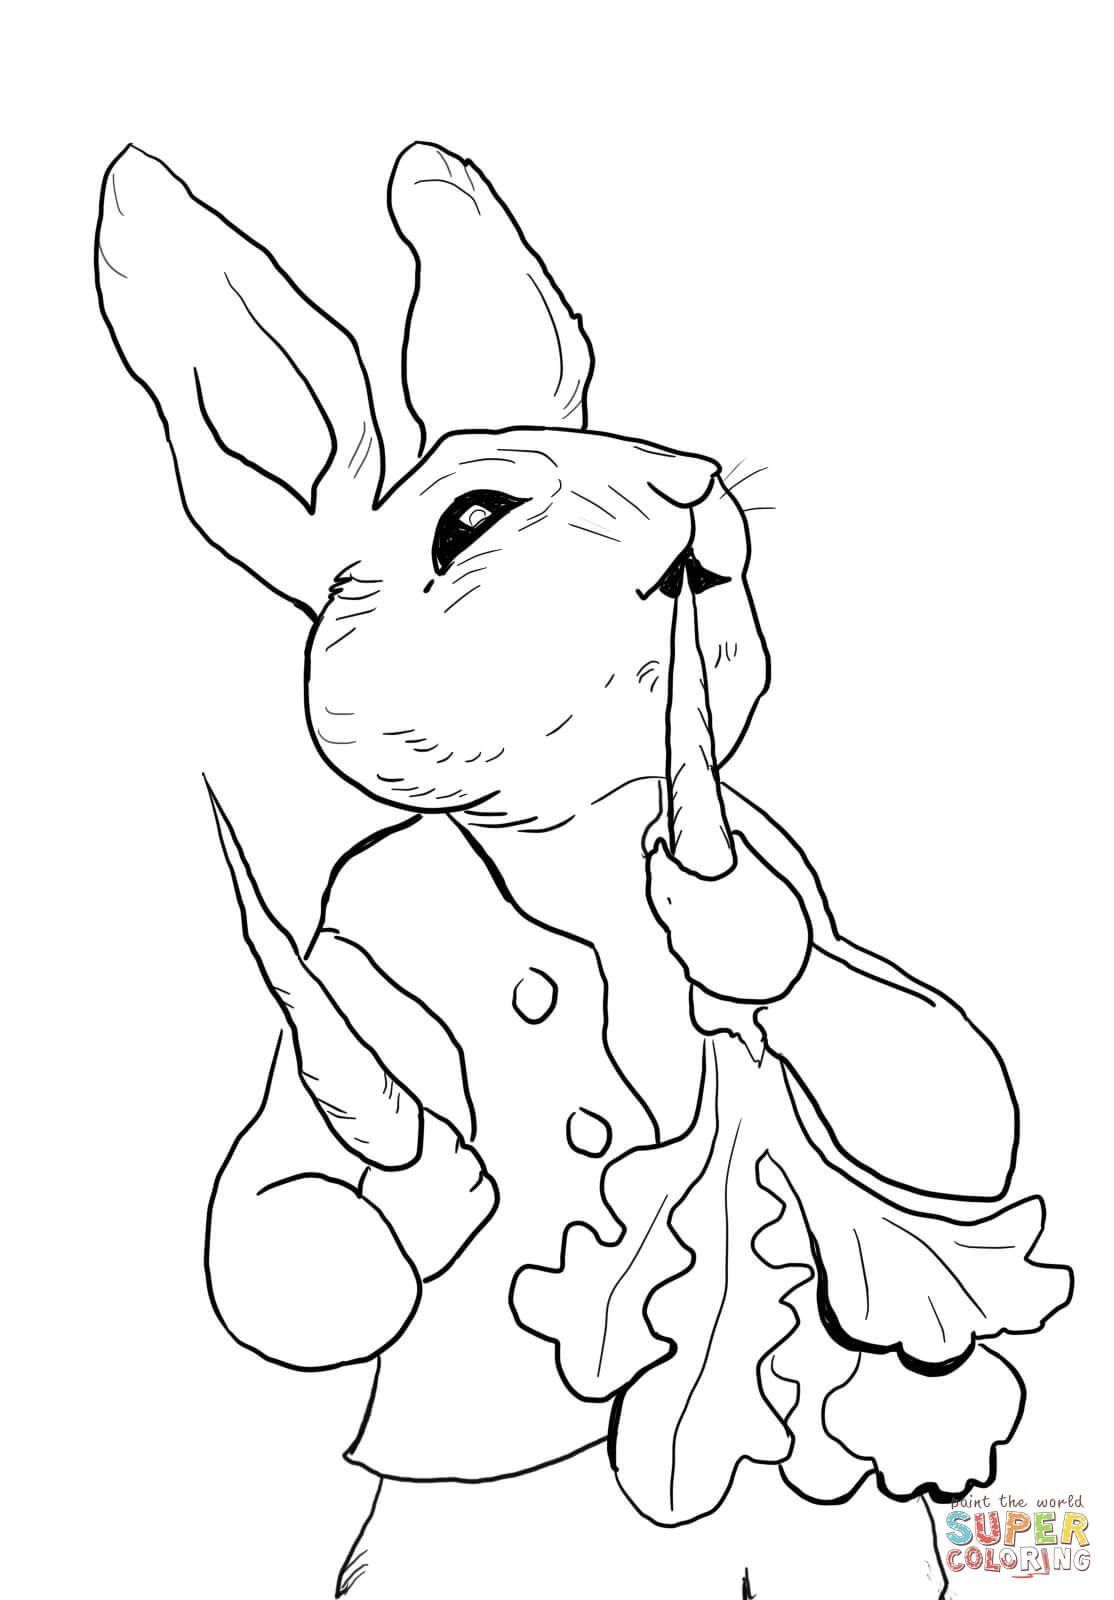 Peter Rabbit Coloring Pages Beautiful Peter Rabbit Coloring Pages